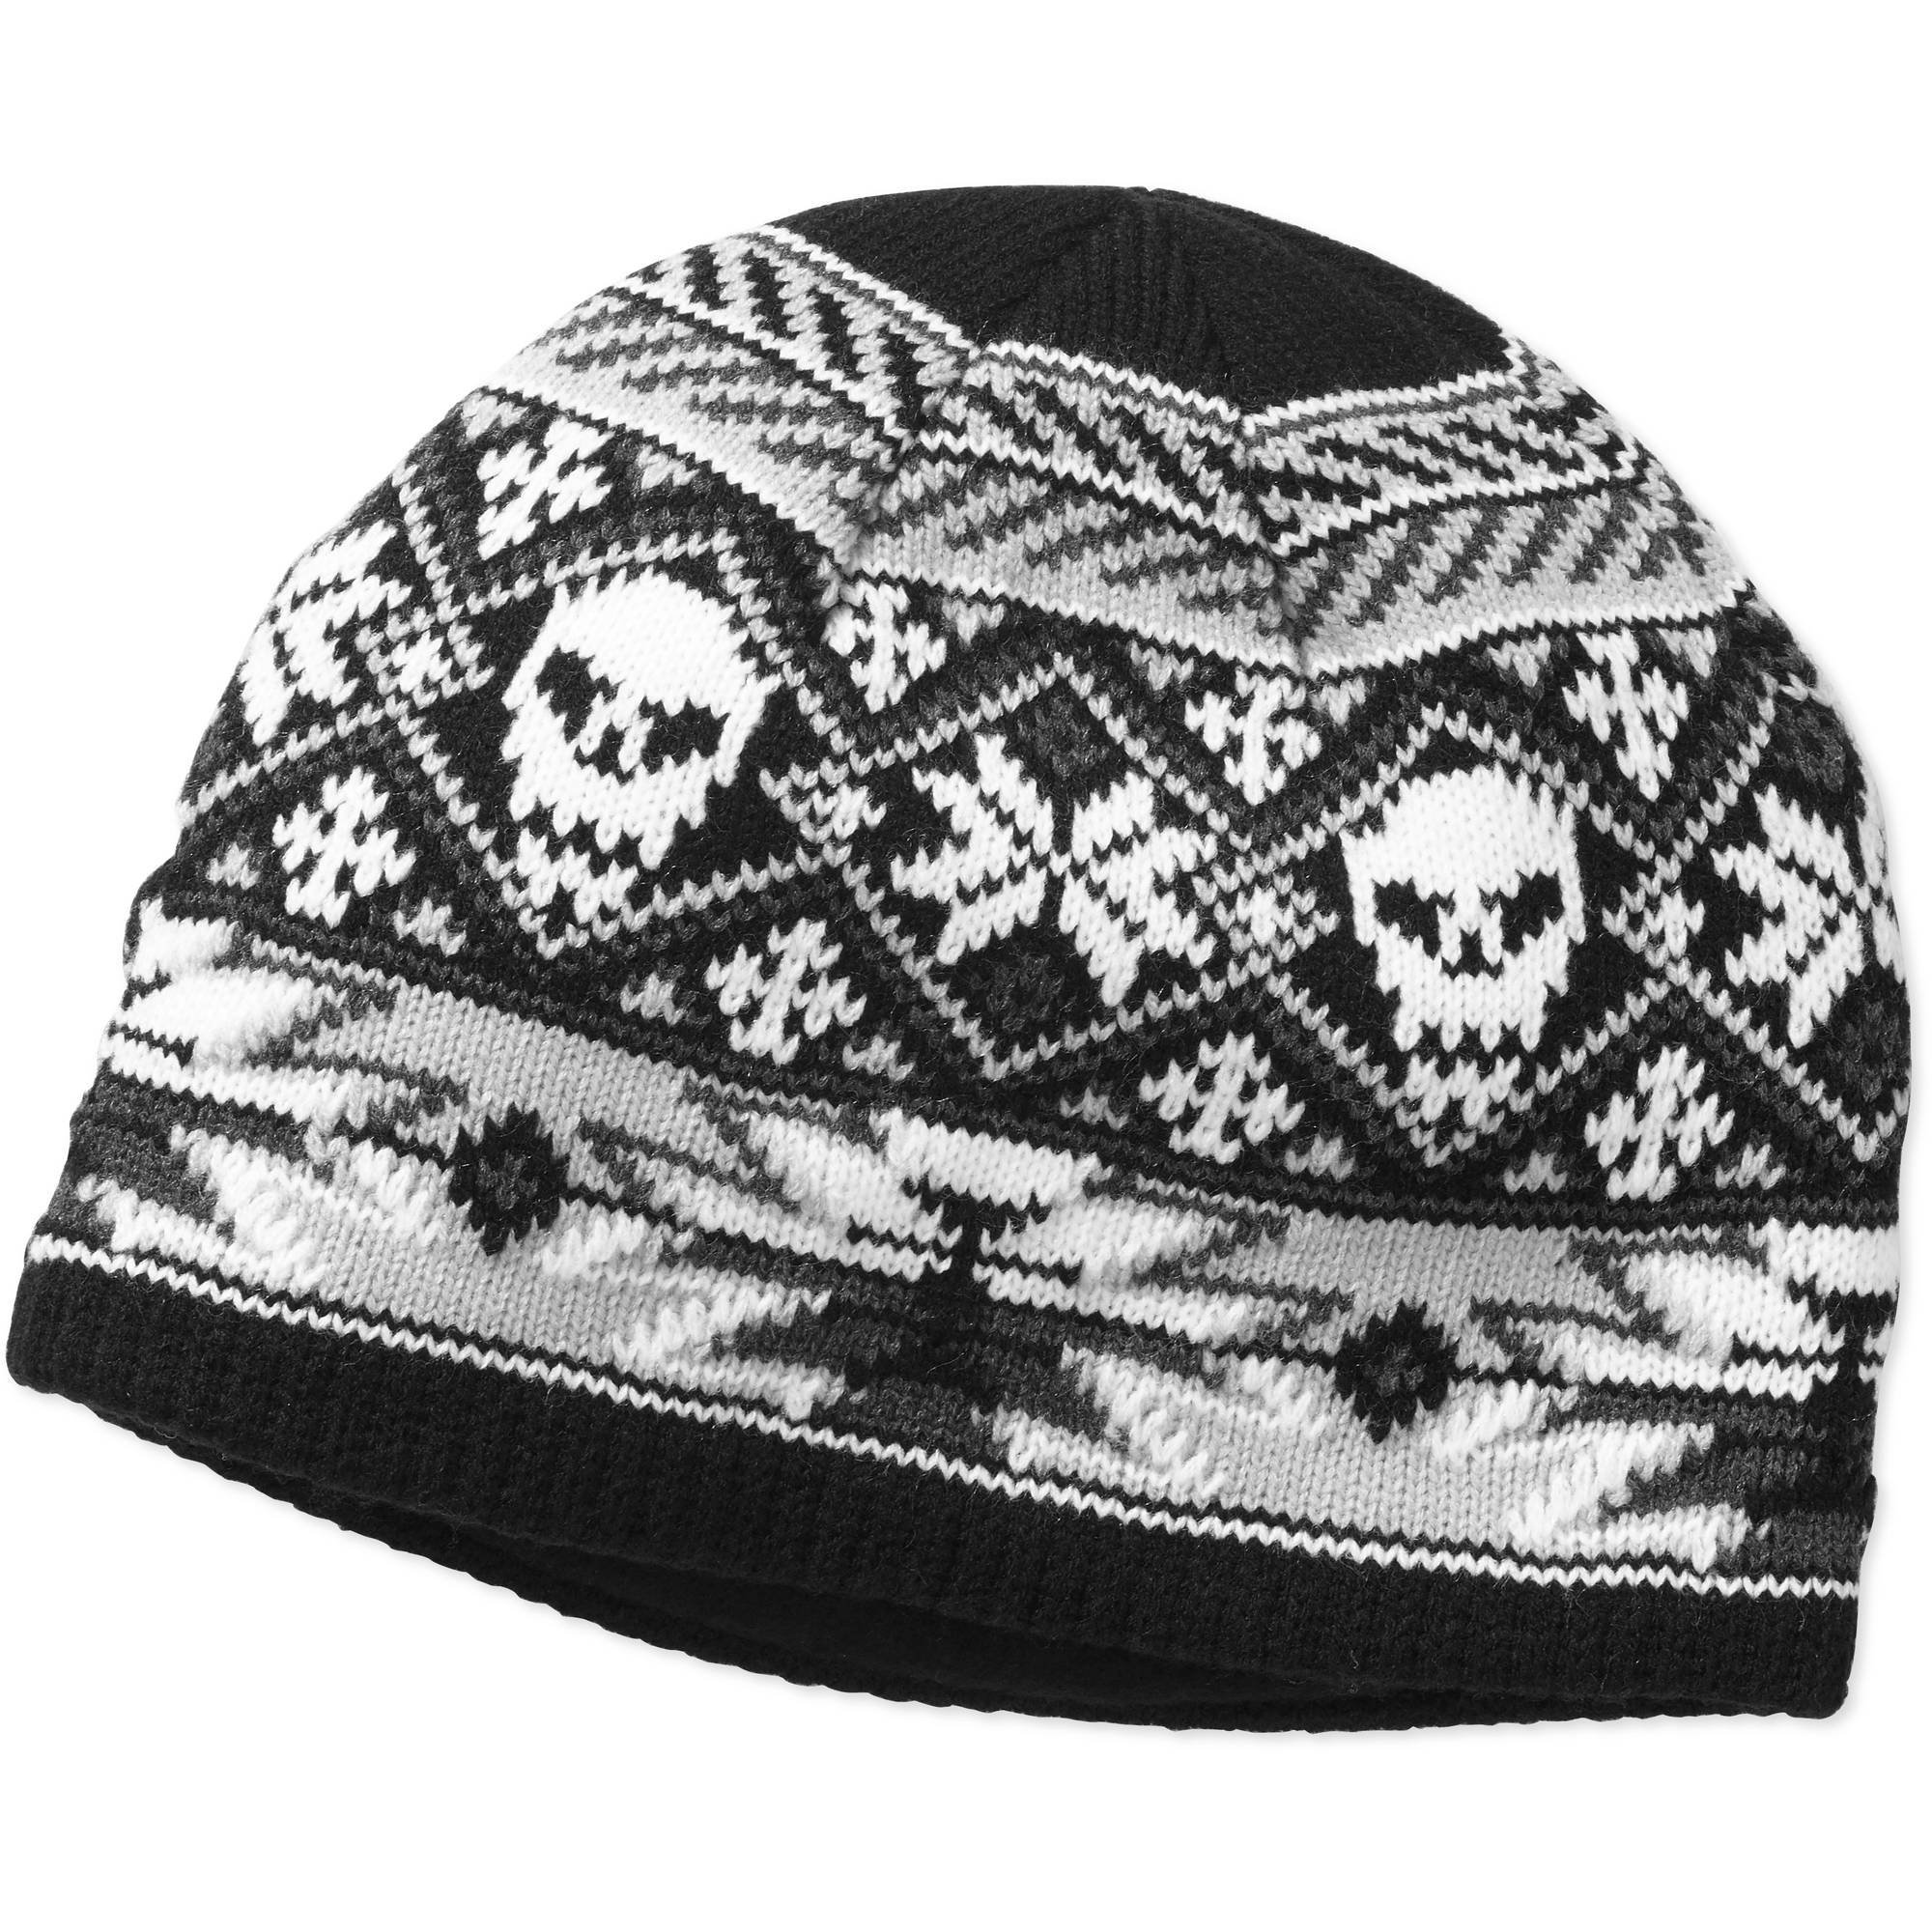 Faded Glory Men's Knit Skull Beanie Hat